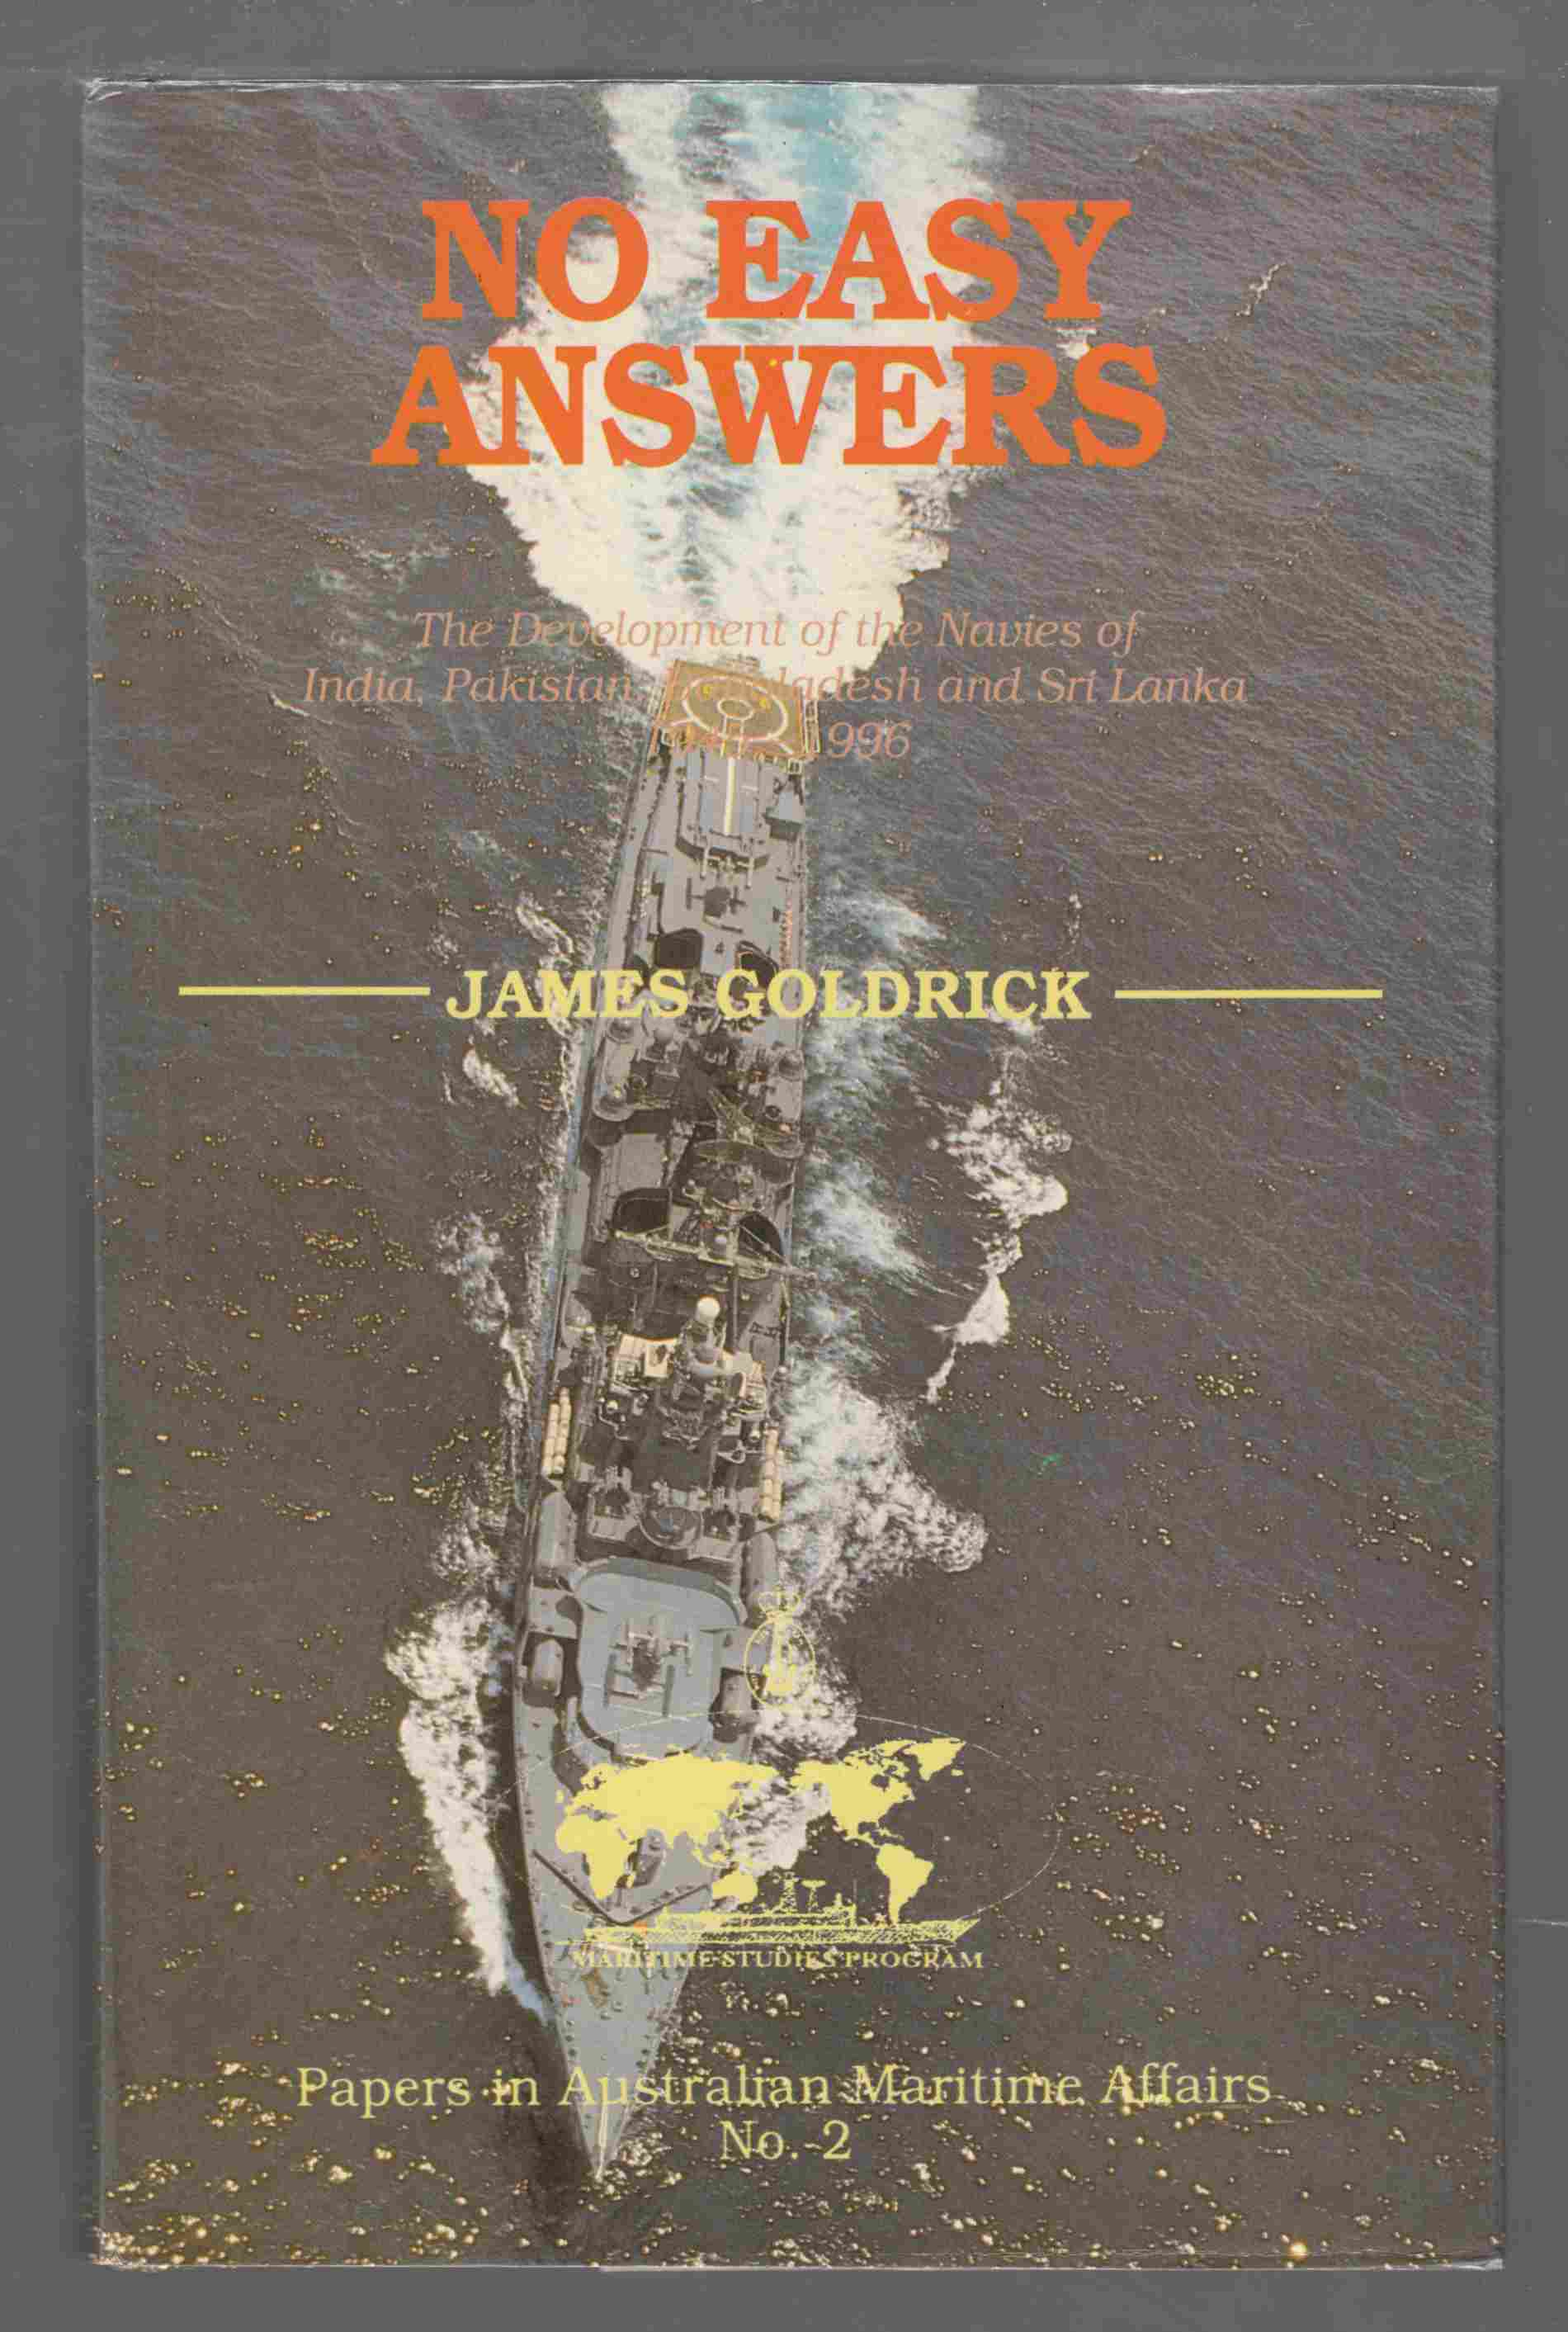 Image for No Easy Answers The Development of the Navies of India, Pakistan, Bangladesh and Sri Lanka 1945-1996